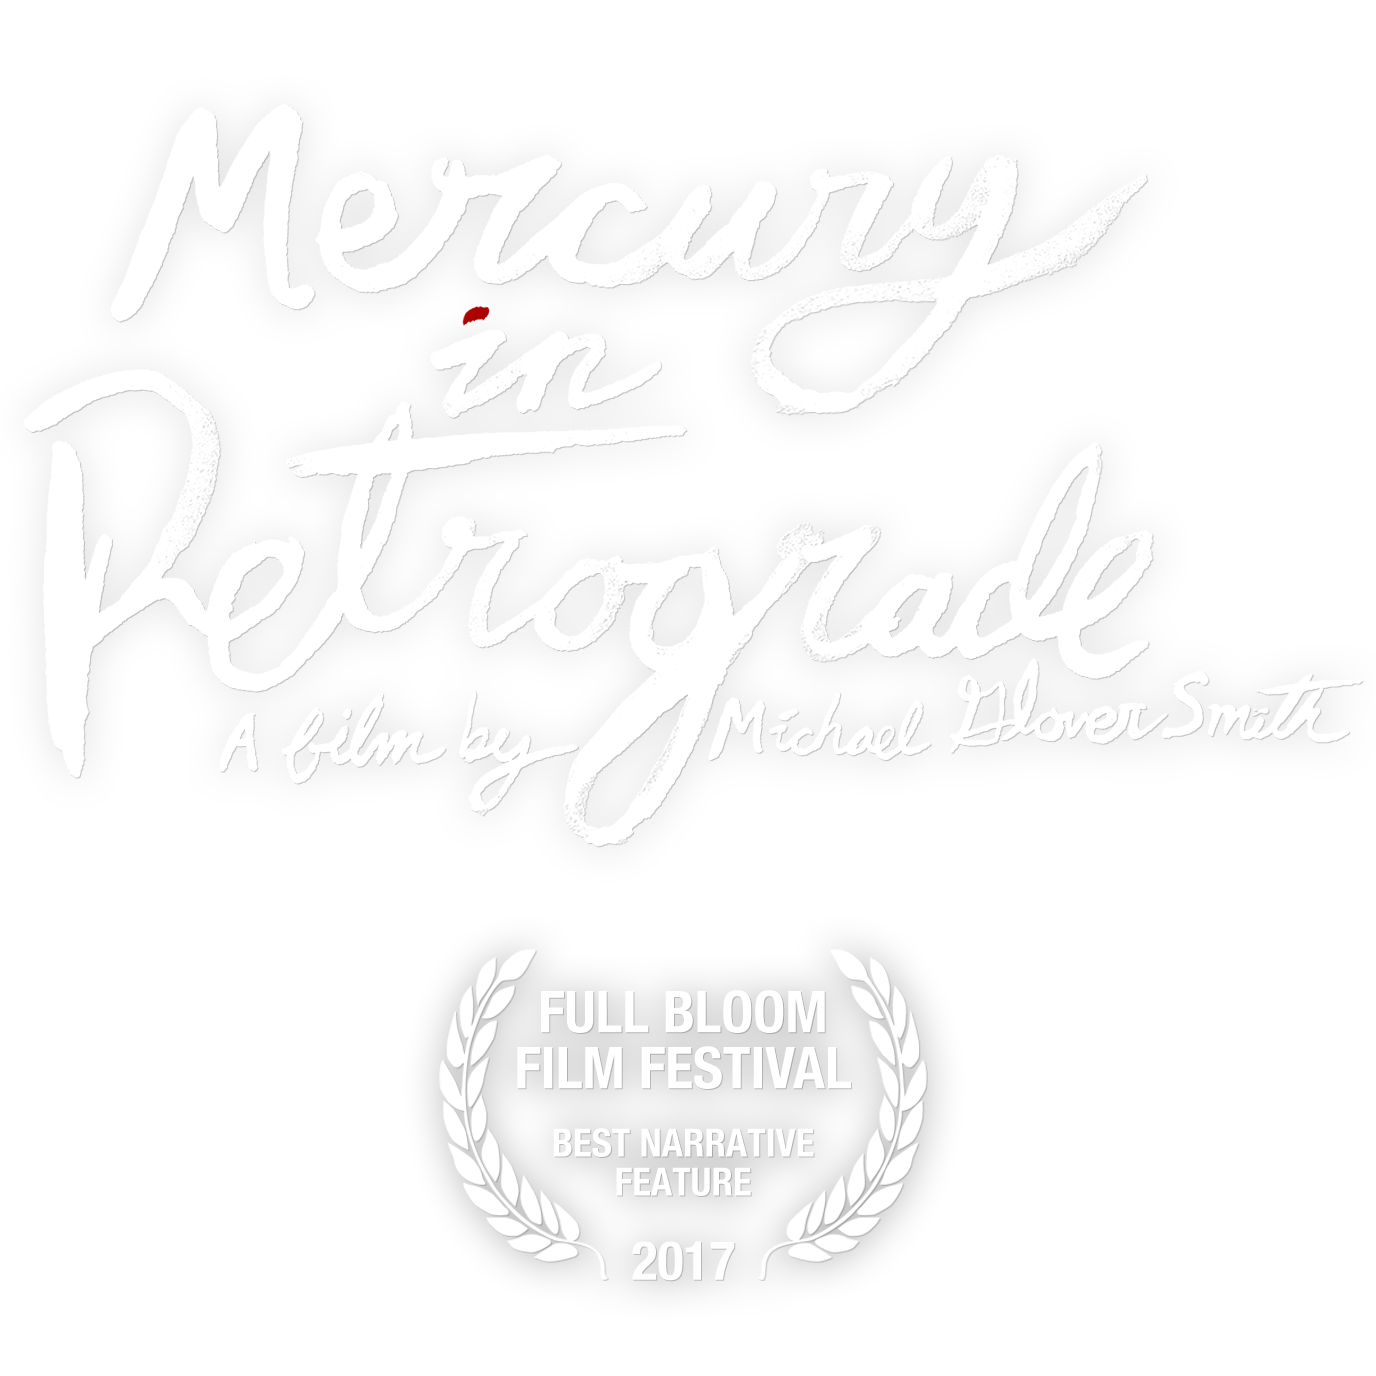 Mercury in Retrograde - a feature film by Michael Glover Smith